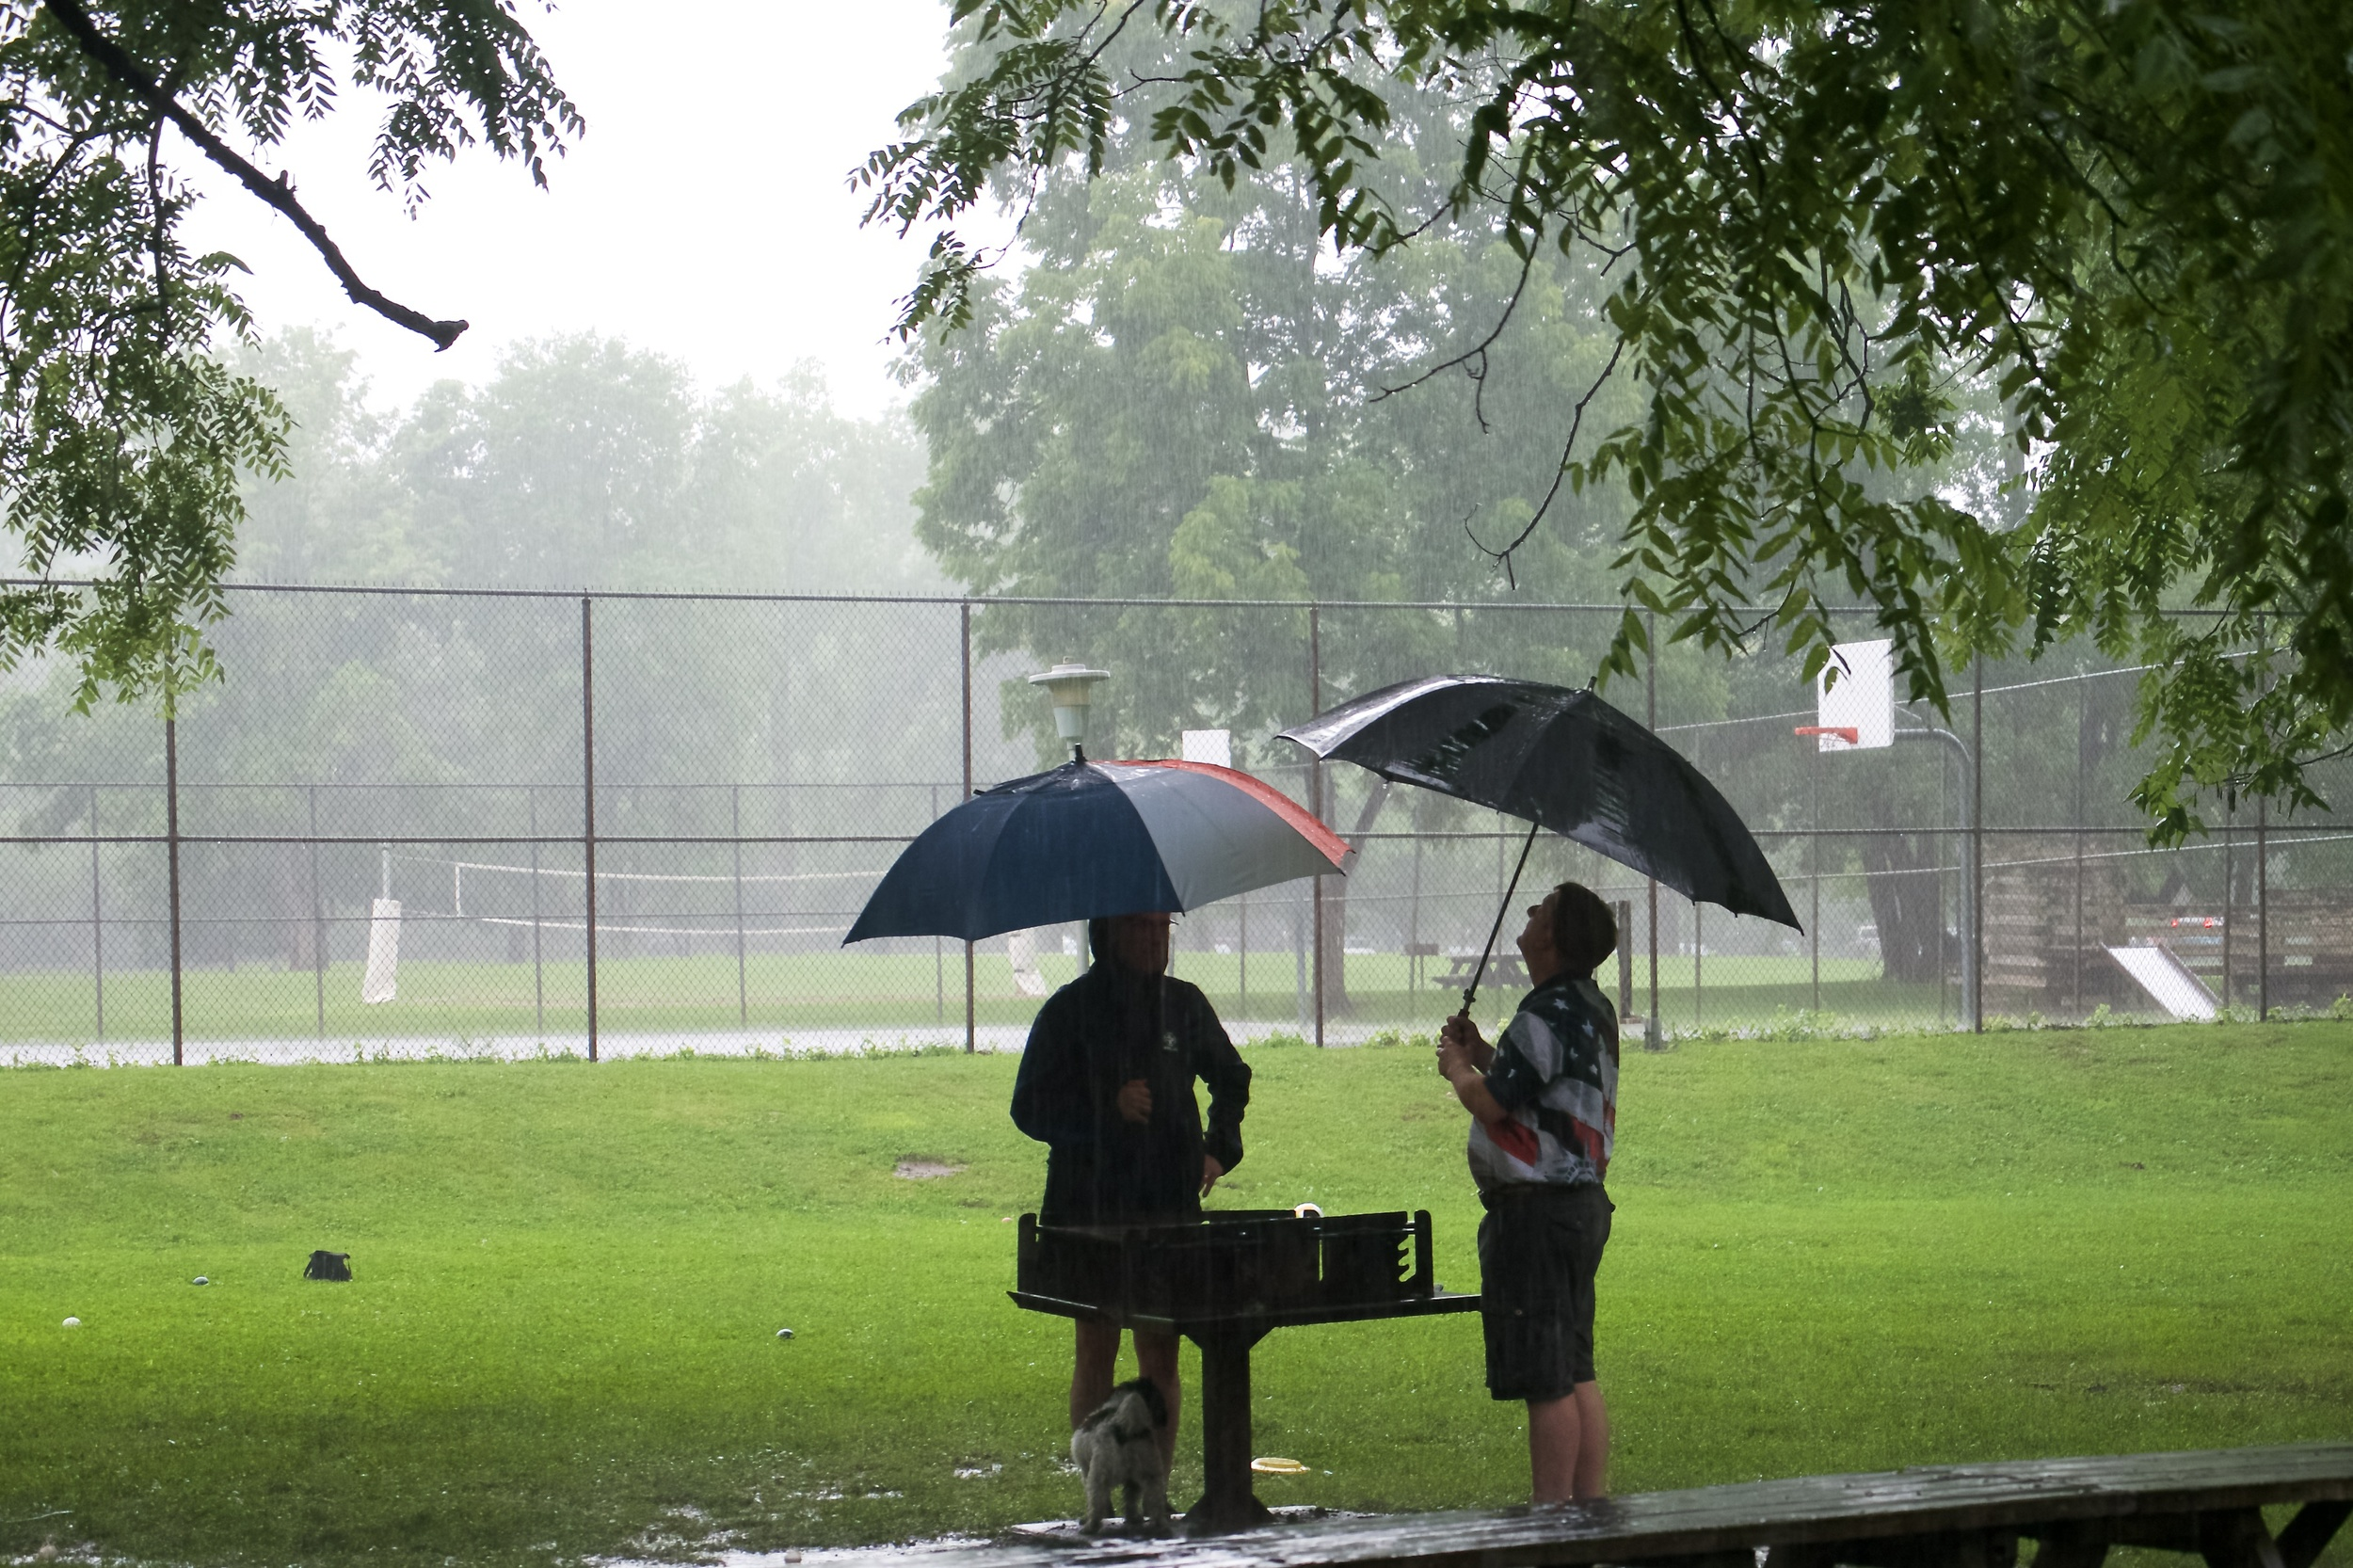 Curt and Kevin contemplating using the grill in the rain